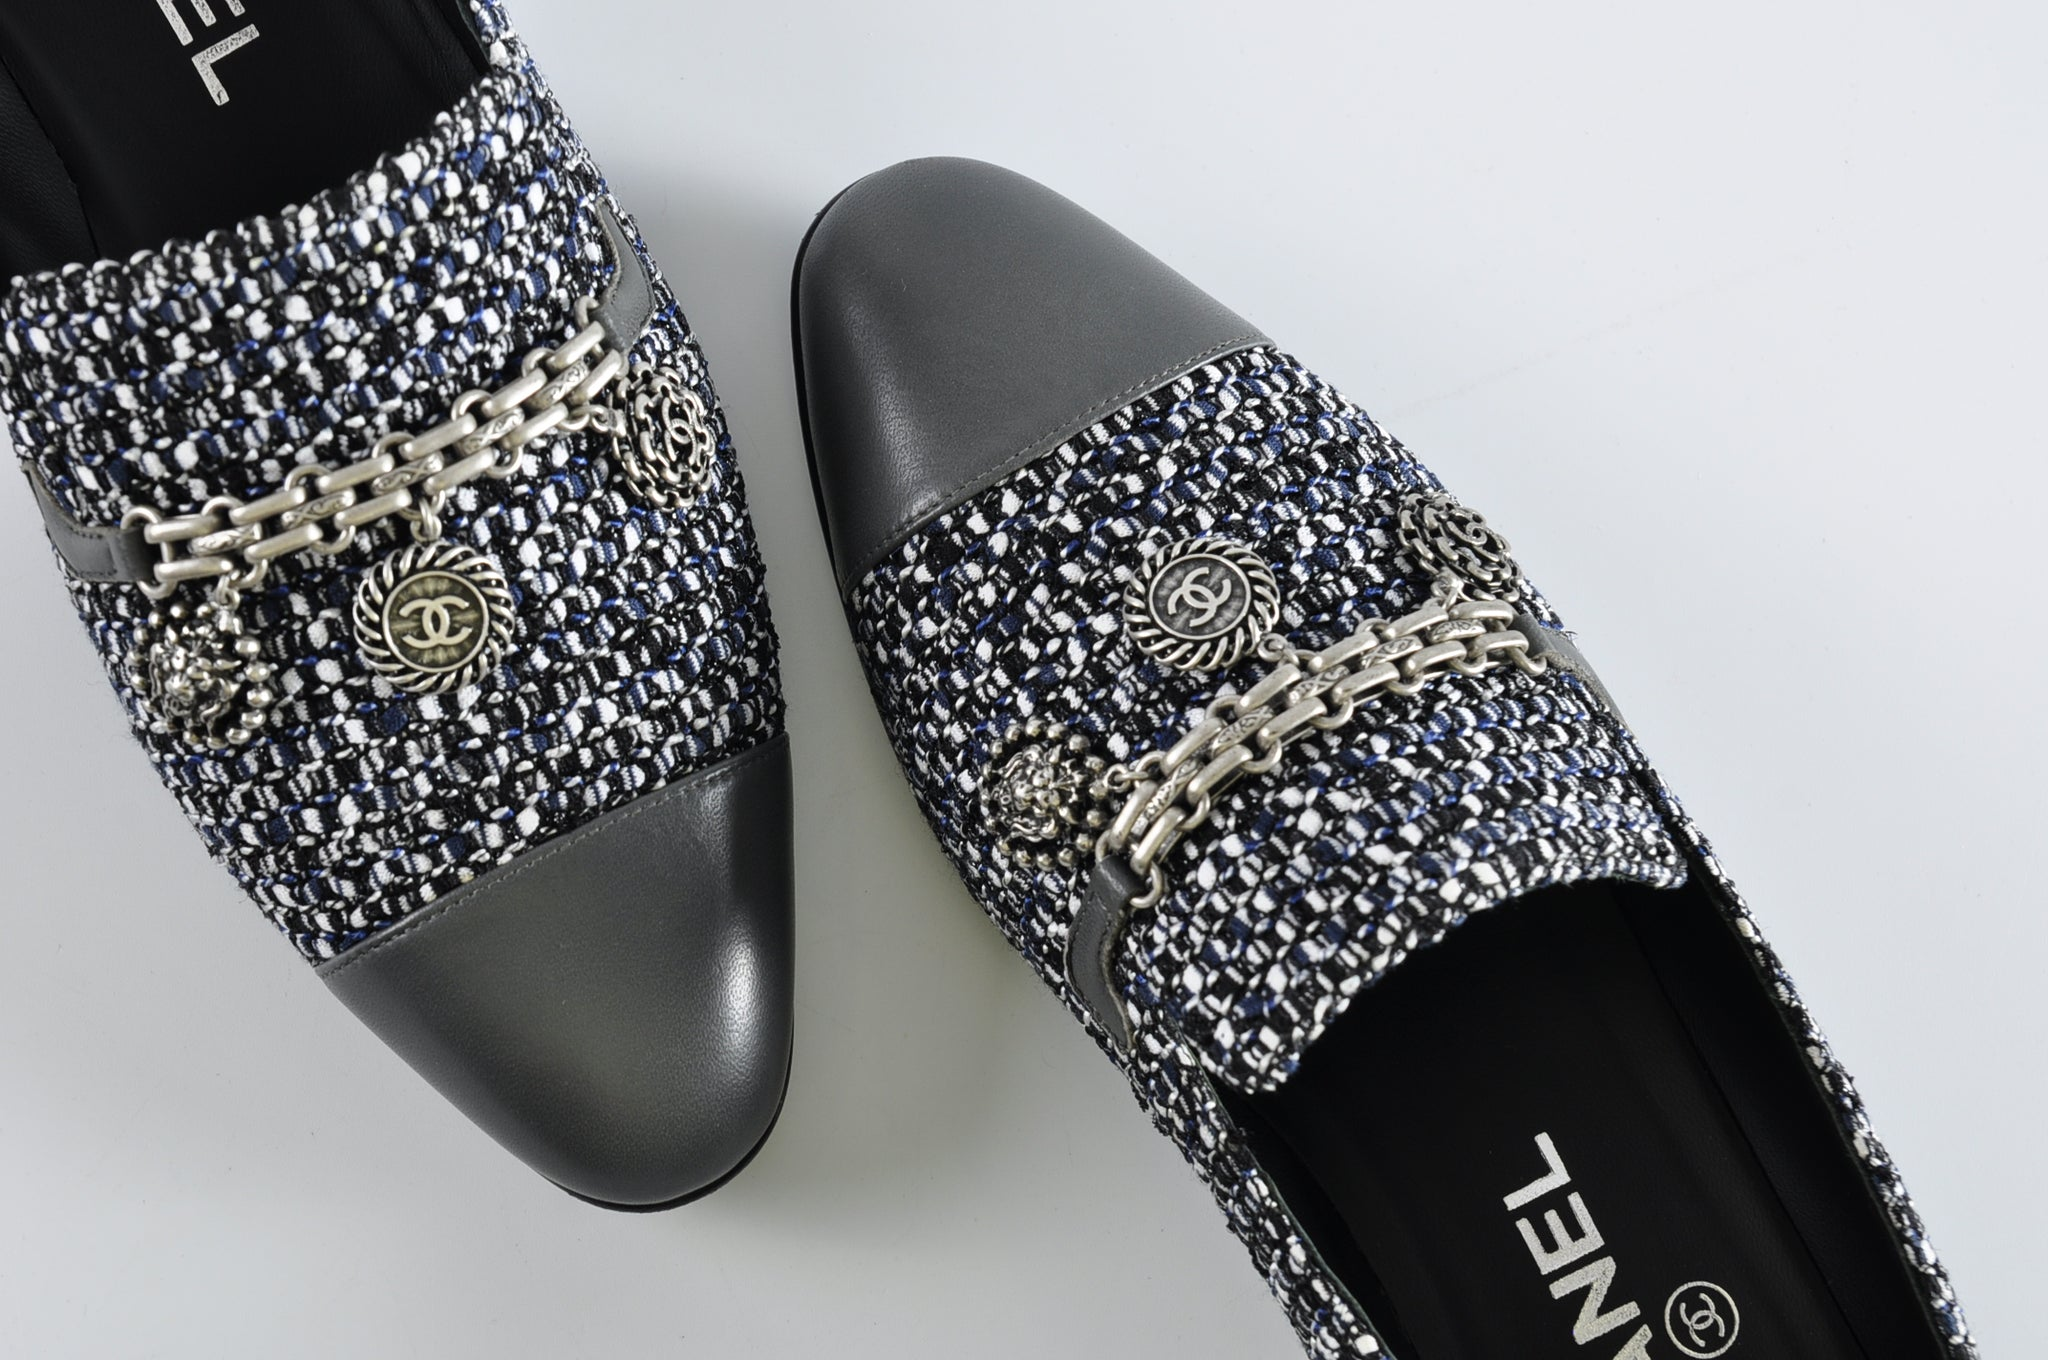 Chanel 16P G31651 Tweed Black White Blue Dark Grey Lambskin Grey Cap Toe Charm Loafers - Size 36.5 - Glampot